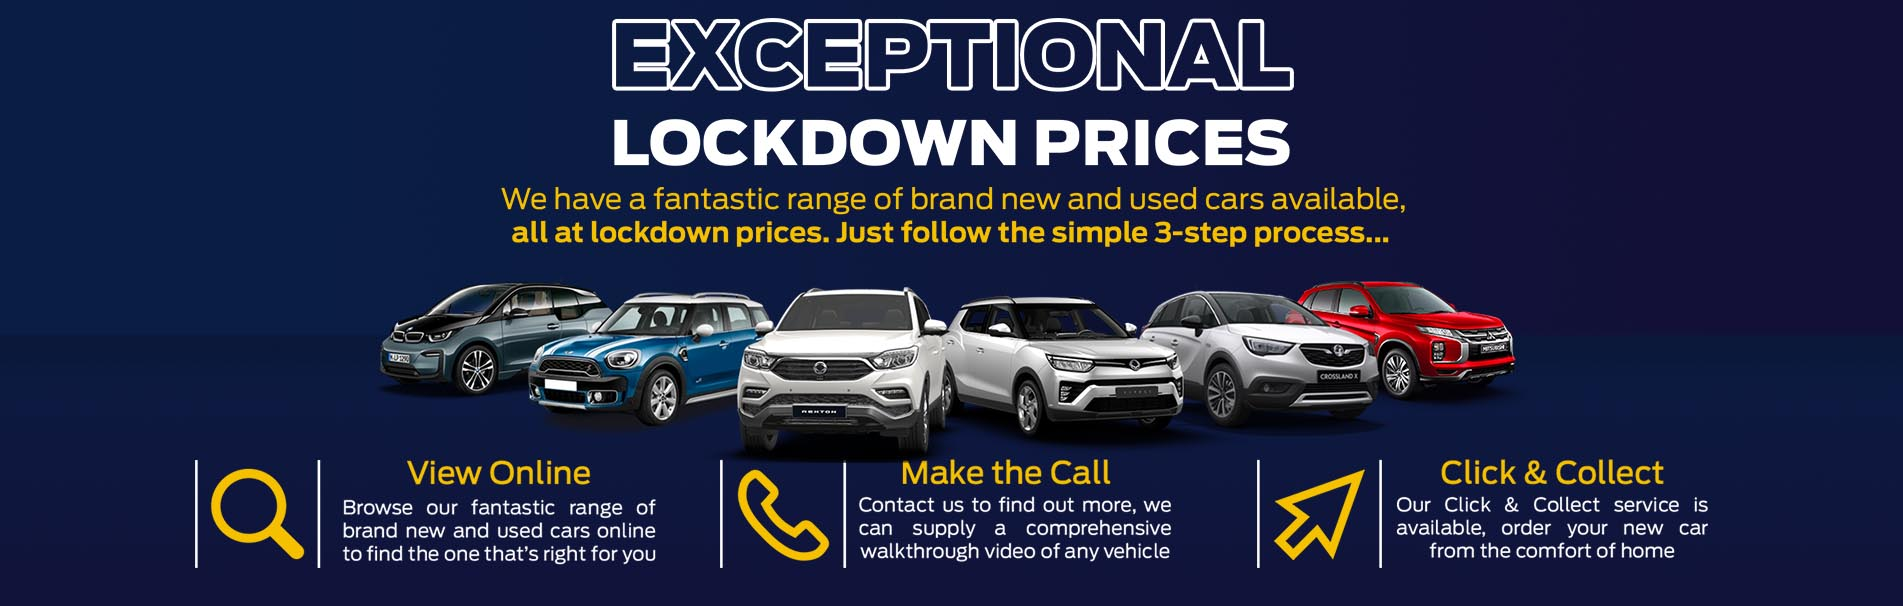 reading-lockdown-cars-at-exceptional-prices-sli